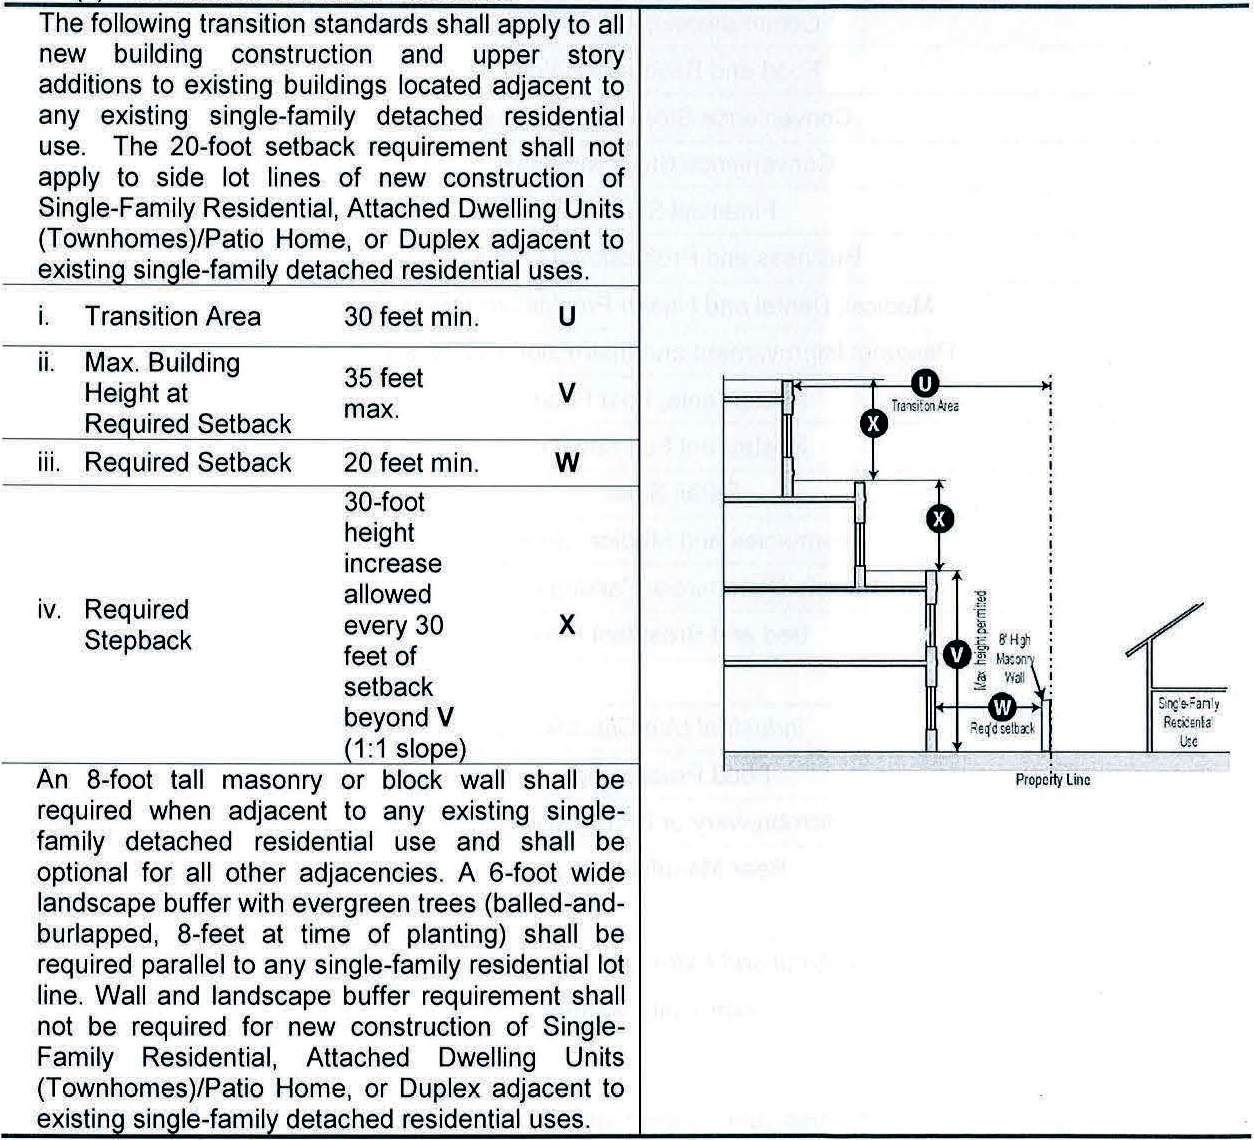 ARTICLE VI  - ZONING   Code of Ordinances   Rogers, AR